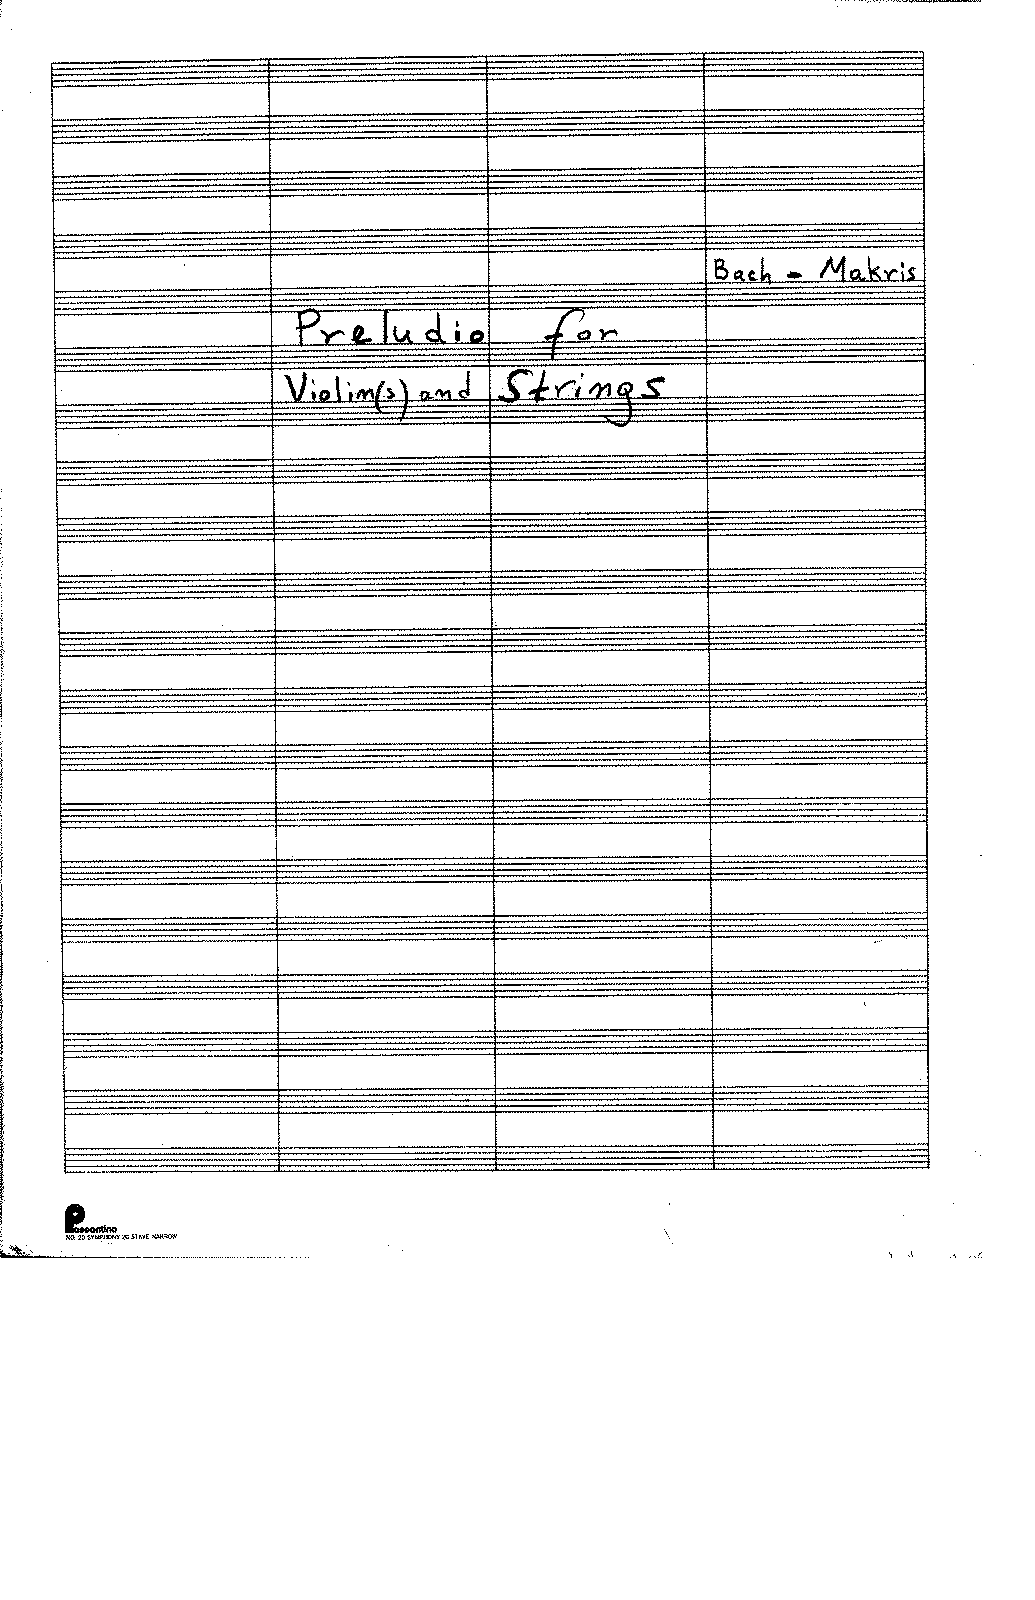 PMLP384369-MAKRIS Preludio for Violin(s) and Strings - manuscript.pdf